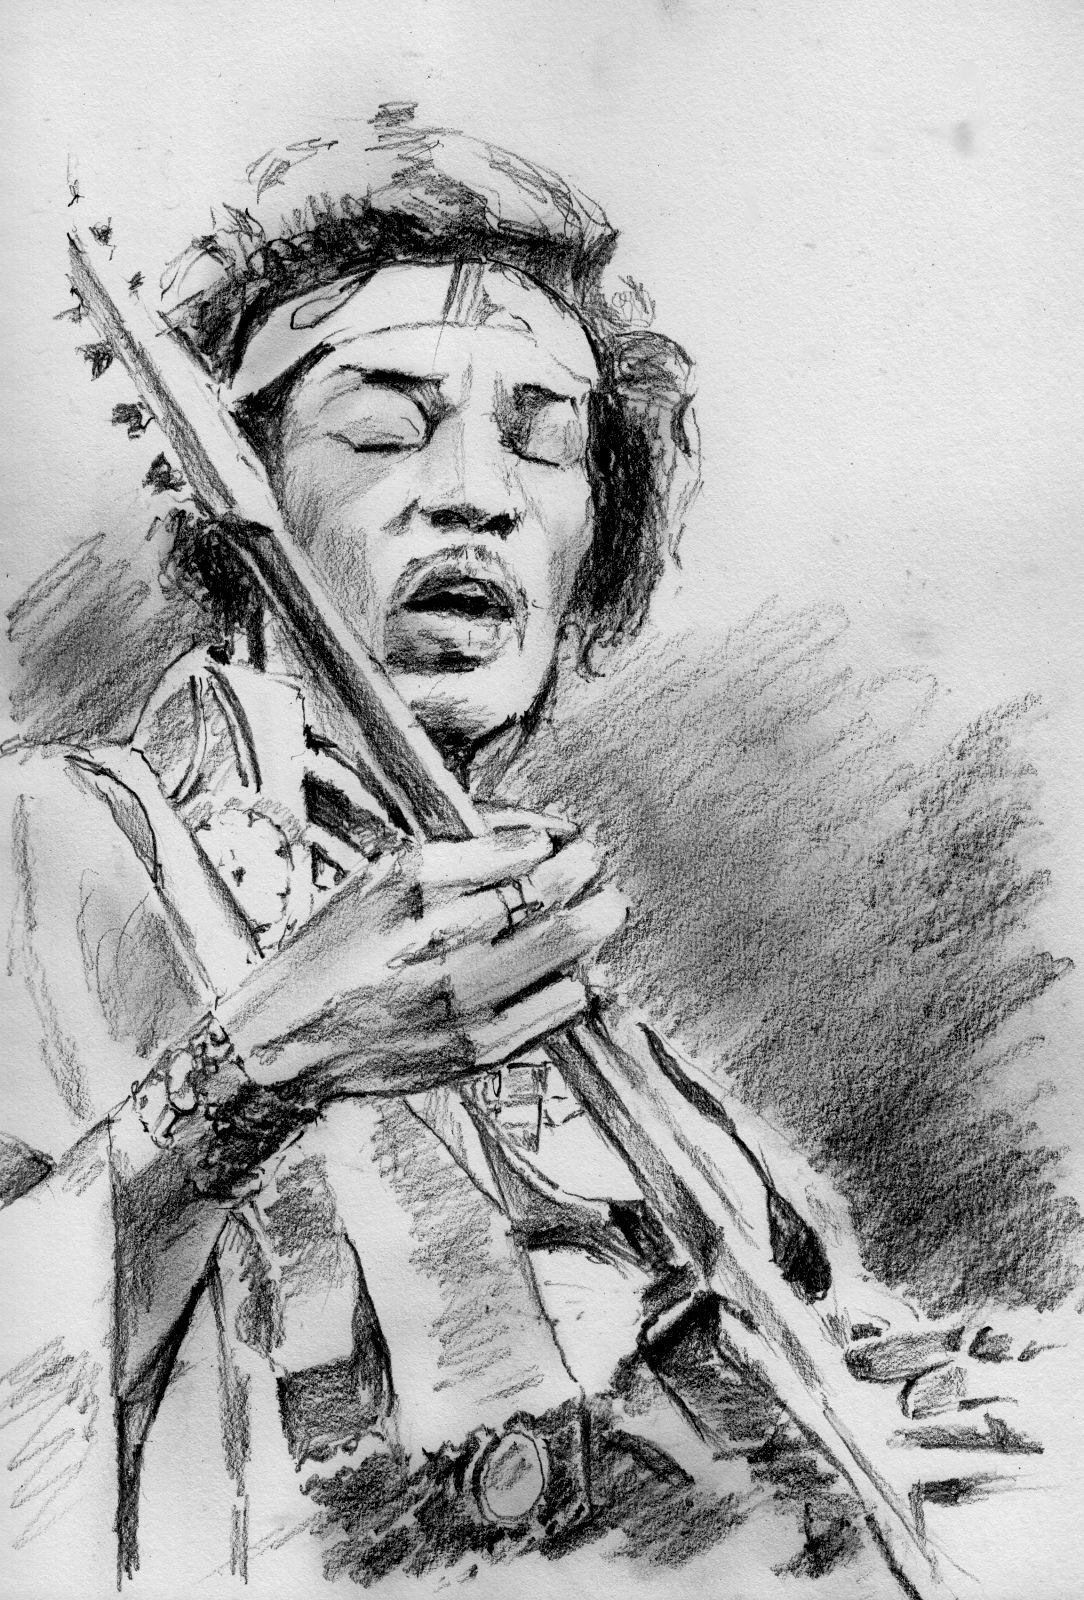 EXCLUSIVE A4 PRINT MUSIC /& GUITAR LEGEND JIMI HENDRIX SIGNED PRINTED